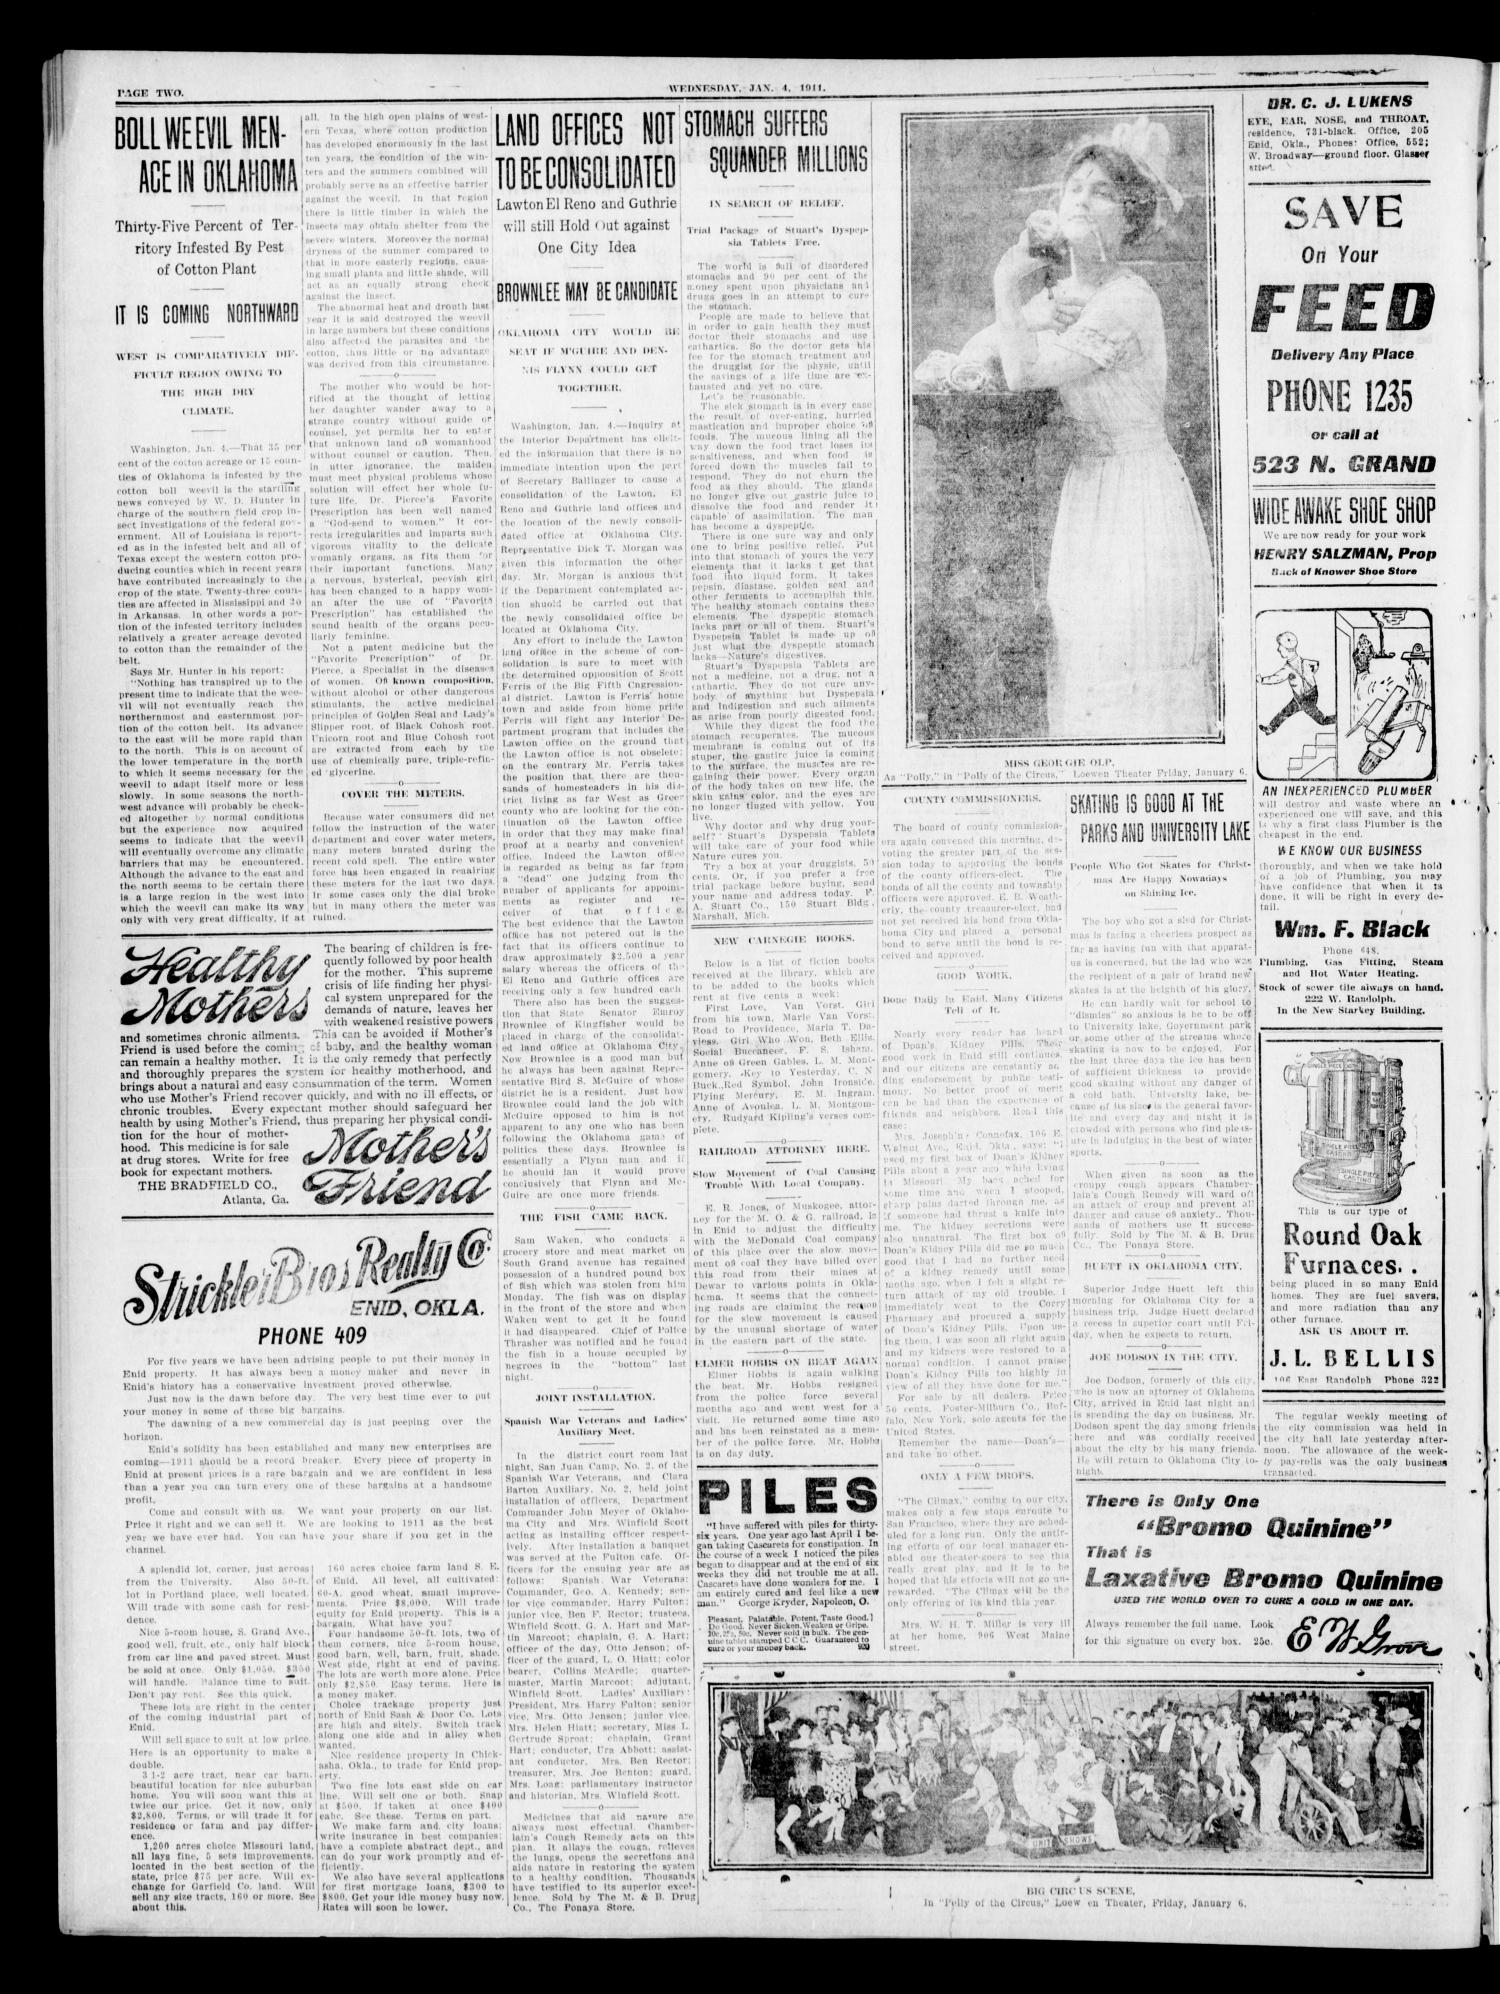 The Enid Daily Eagle. (Enid, Okla.), Vol. 9, No. 287, Ed. 1 Wednesday, January 4, 1911                                                                                                      [Sequence #]: 2 of 8